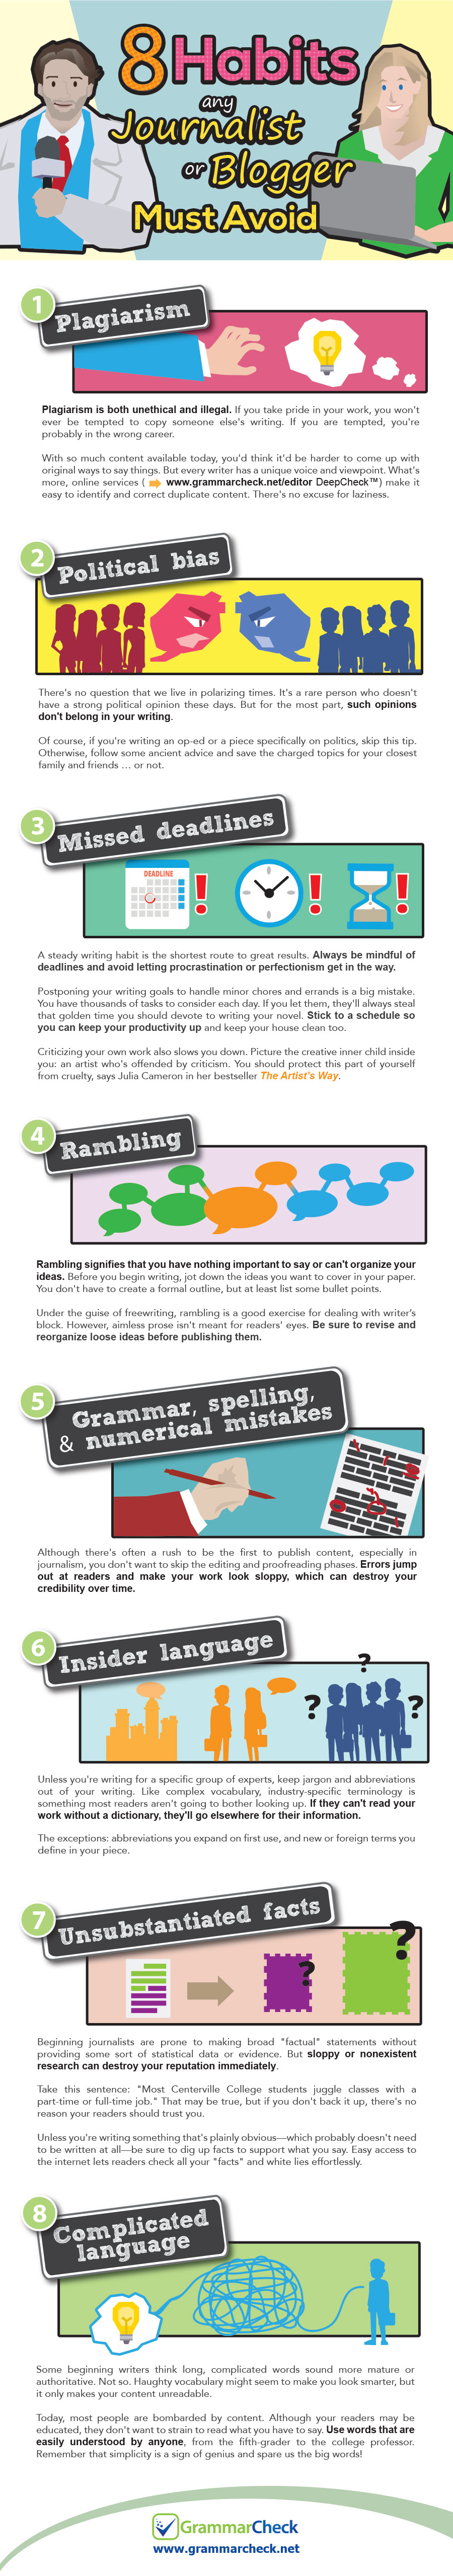 8 Habits Any Journalist or Blogger Must Avoid (Infographic)